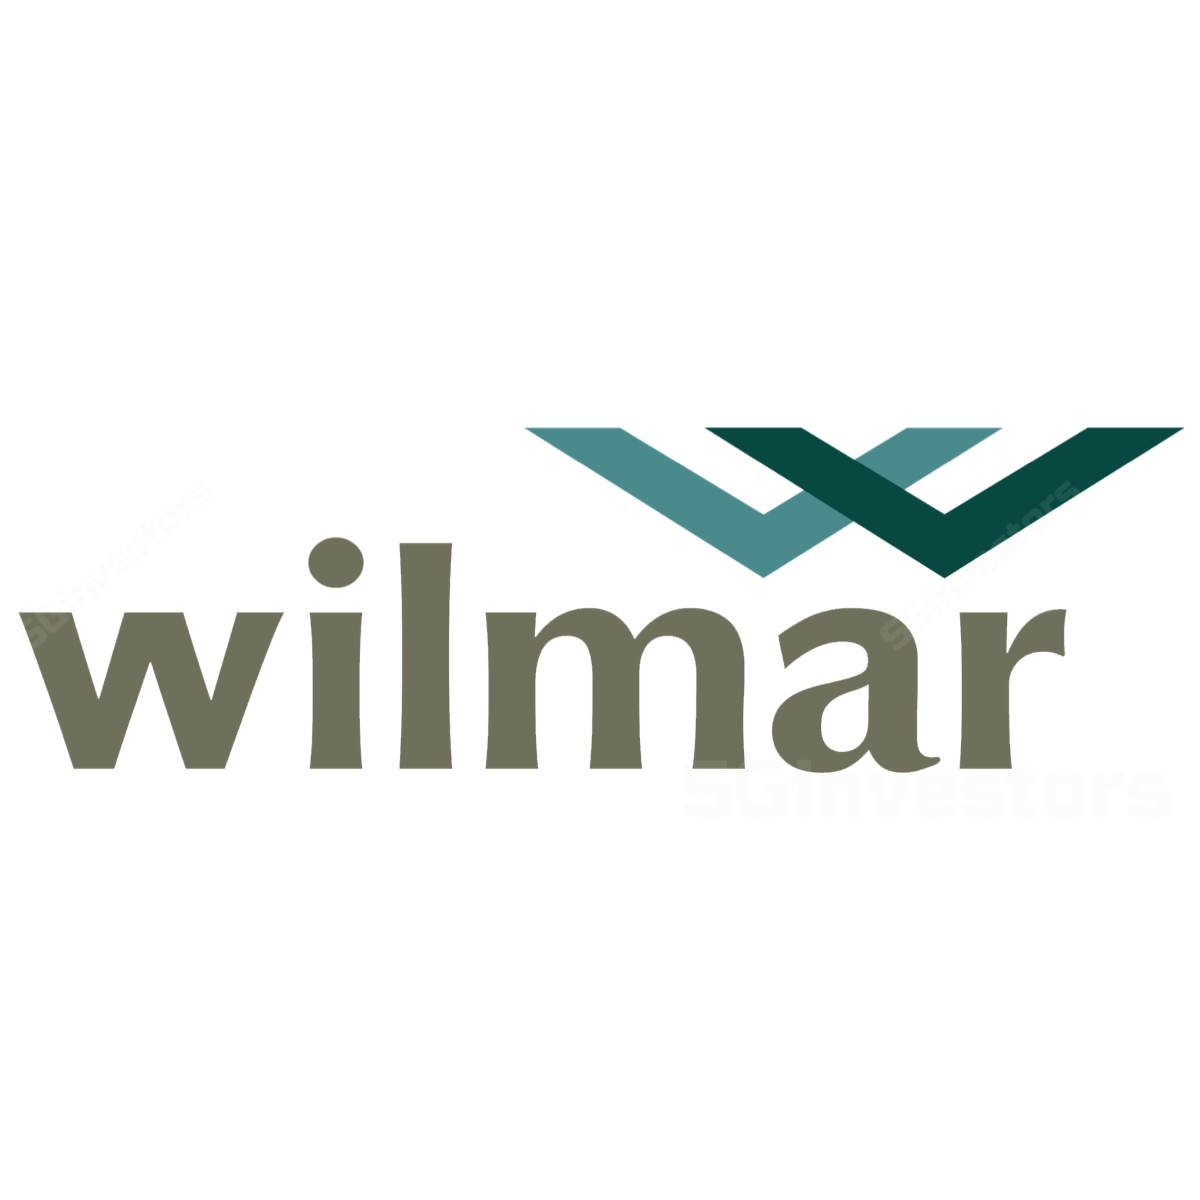 Wilmar International (WIL SP) - UOB Kay Hian 2018-02-23: 4Q17 Results Within Expectations